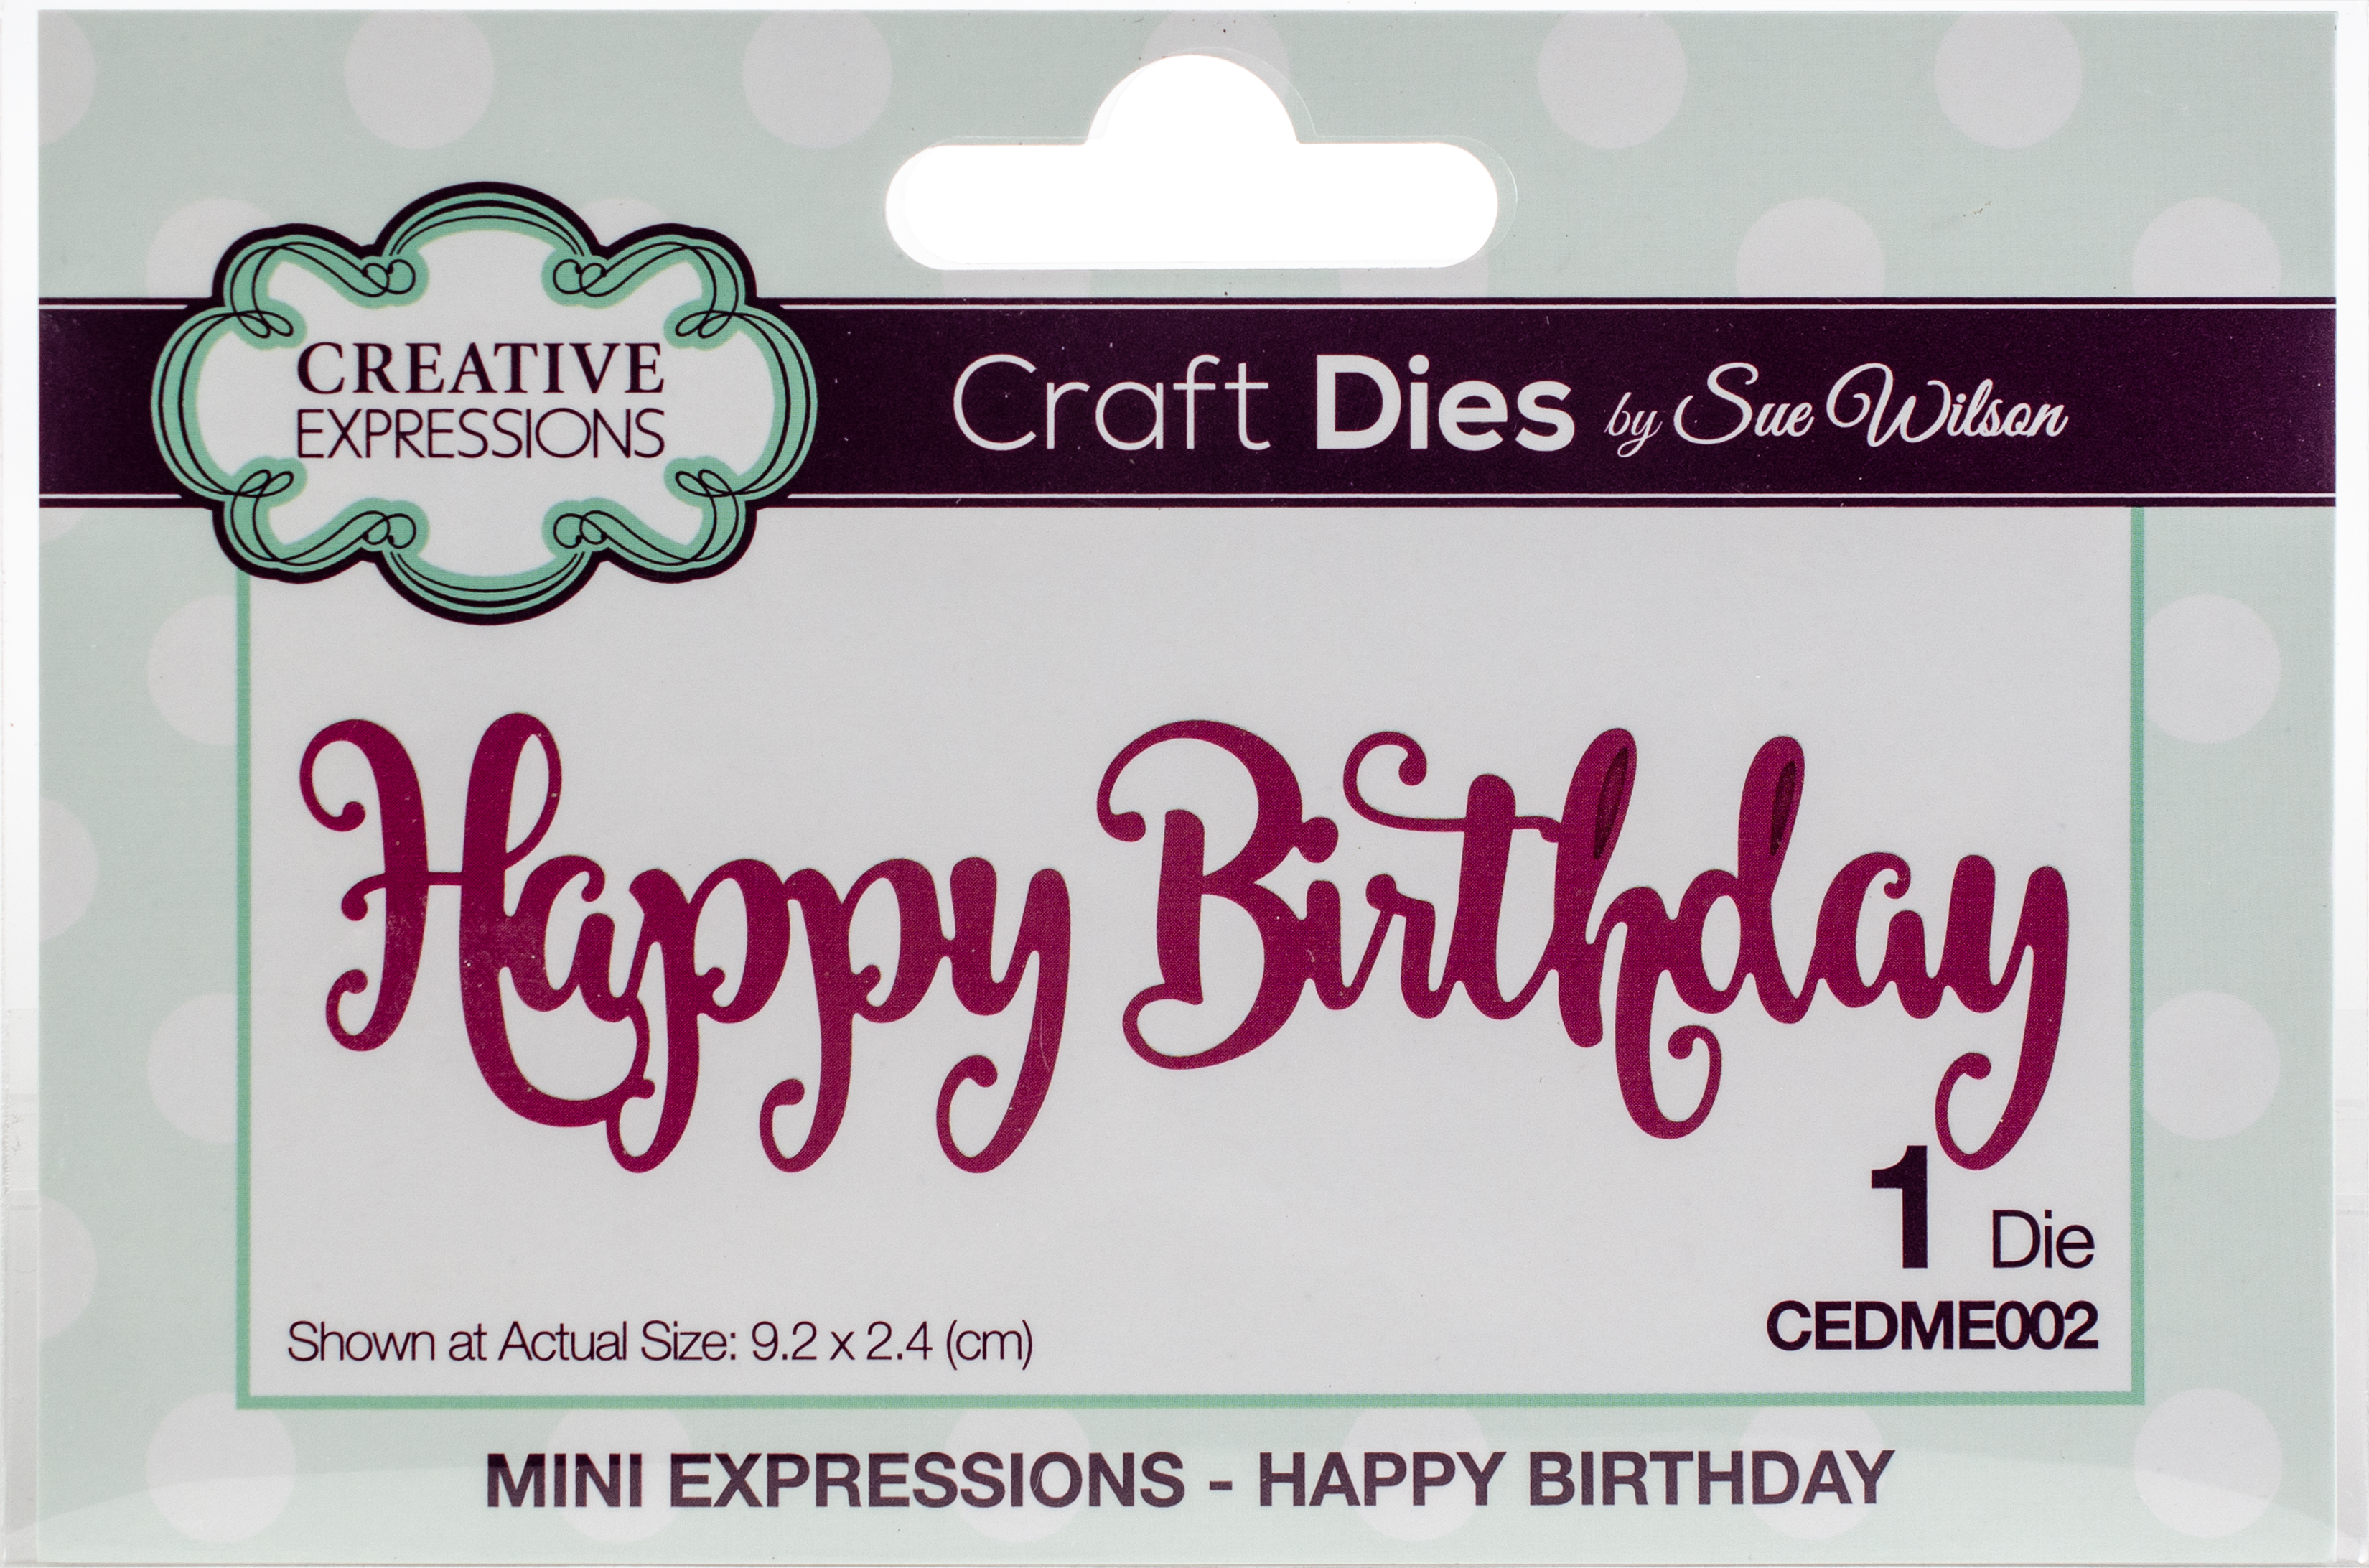 Creative Expressions Craft Dies By Sue Wilson-Mini Expressions-Happy Birthday